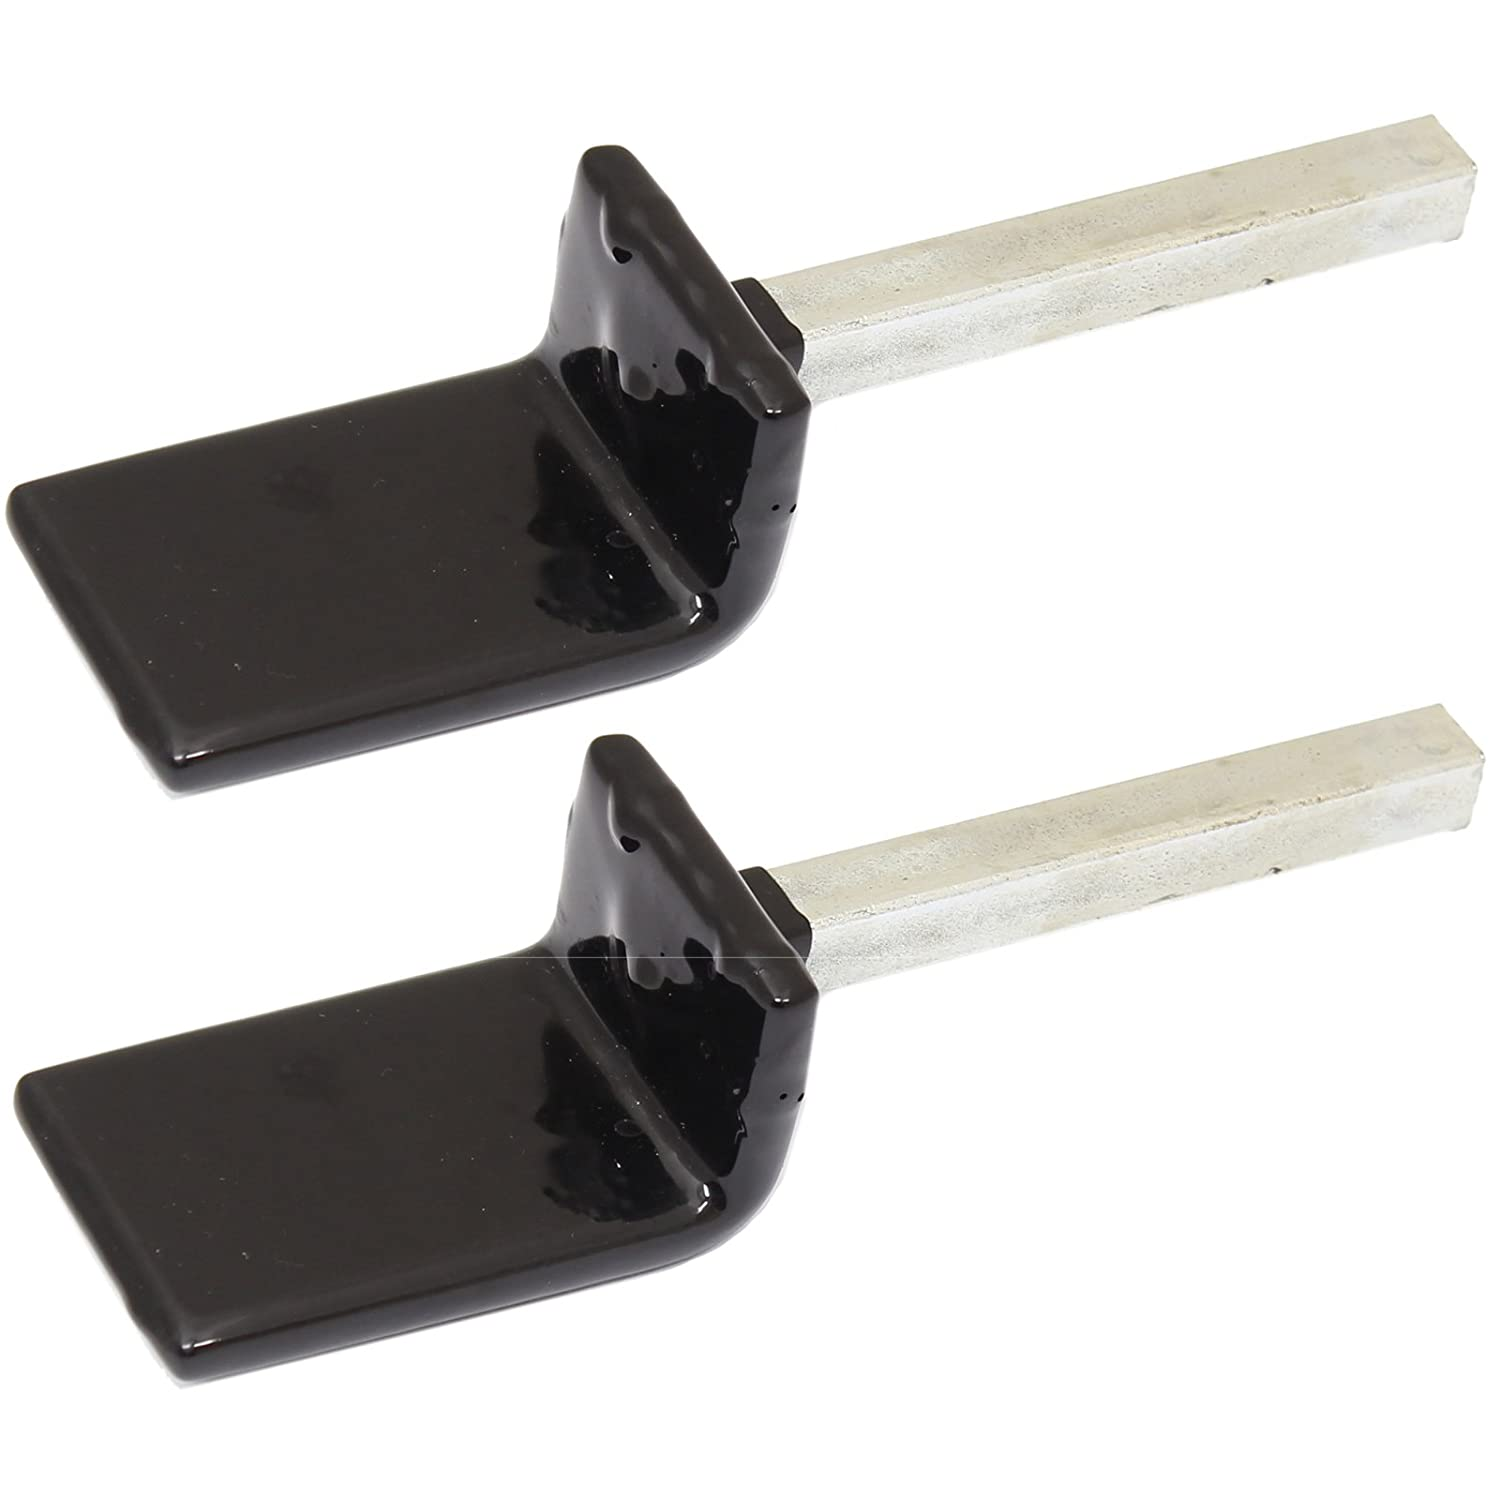 Ryde Motorbike Swing Adaptor Arm Cups for Rear Paddock Stands